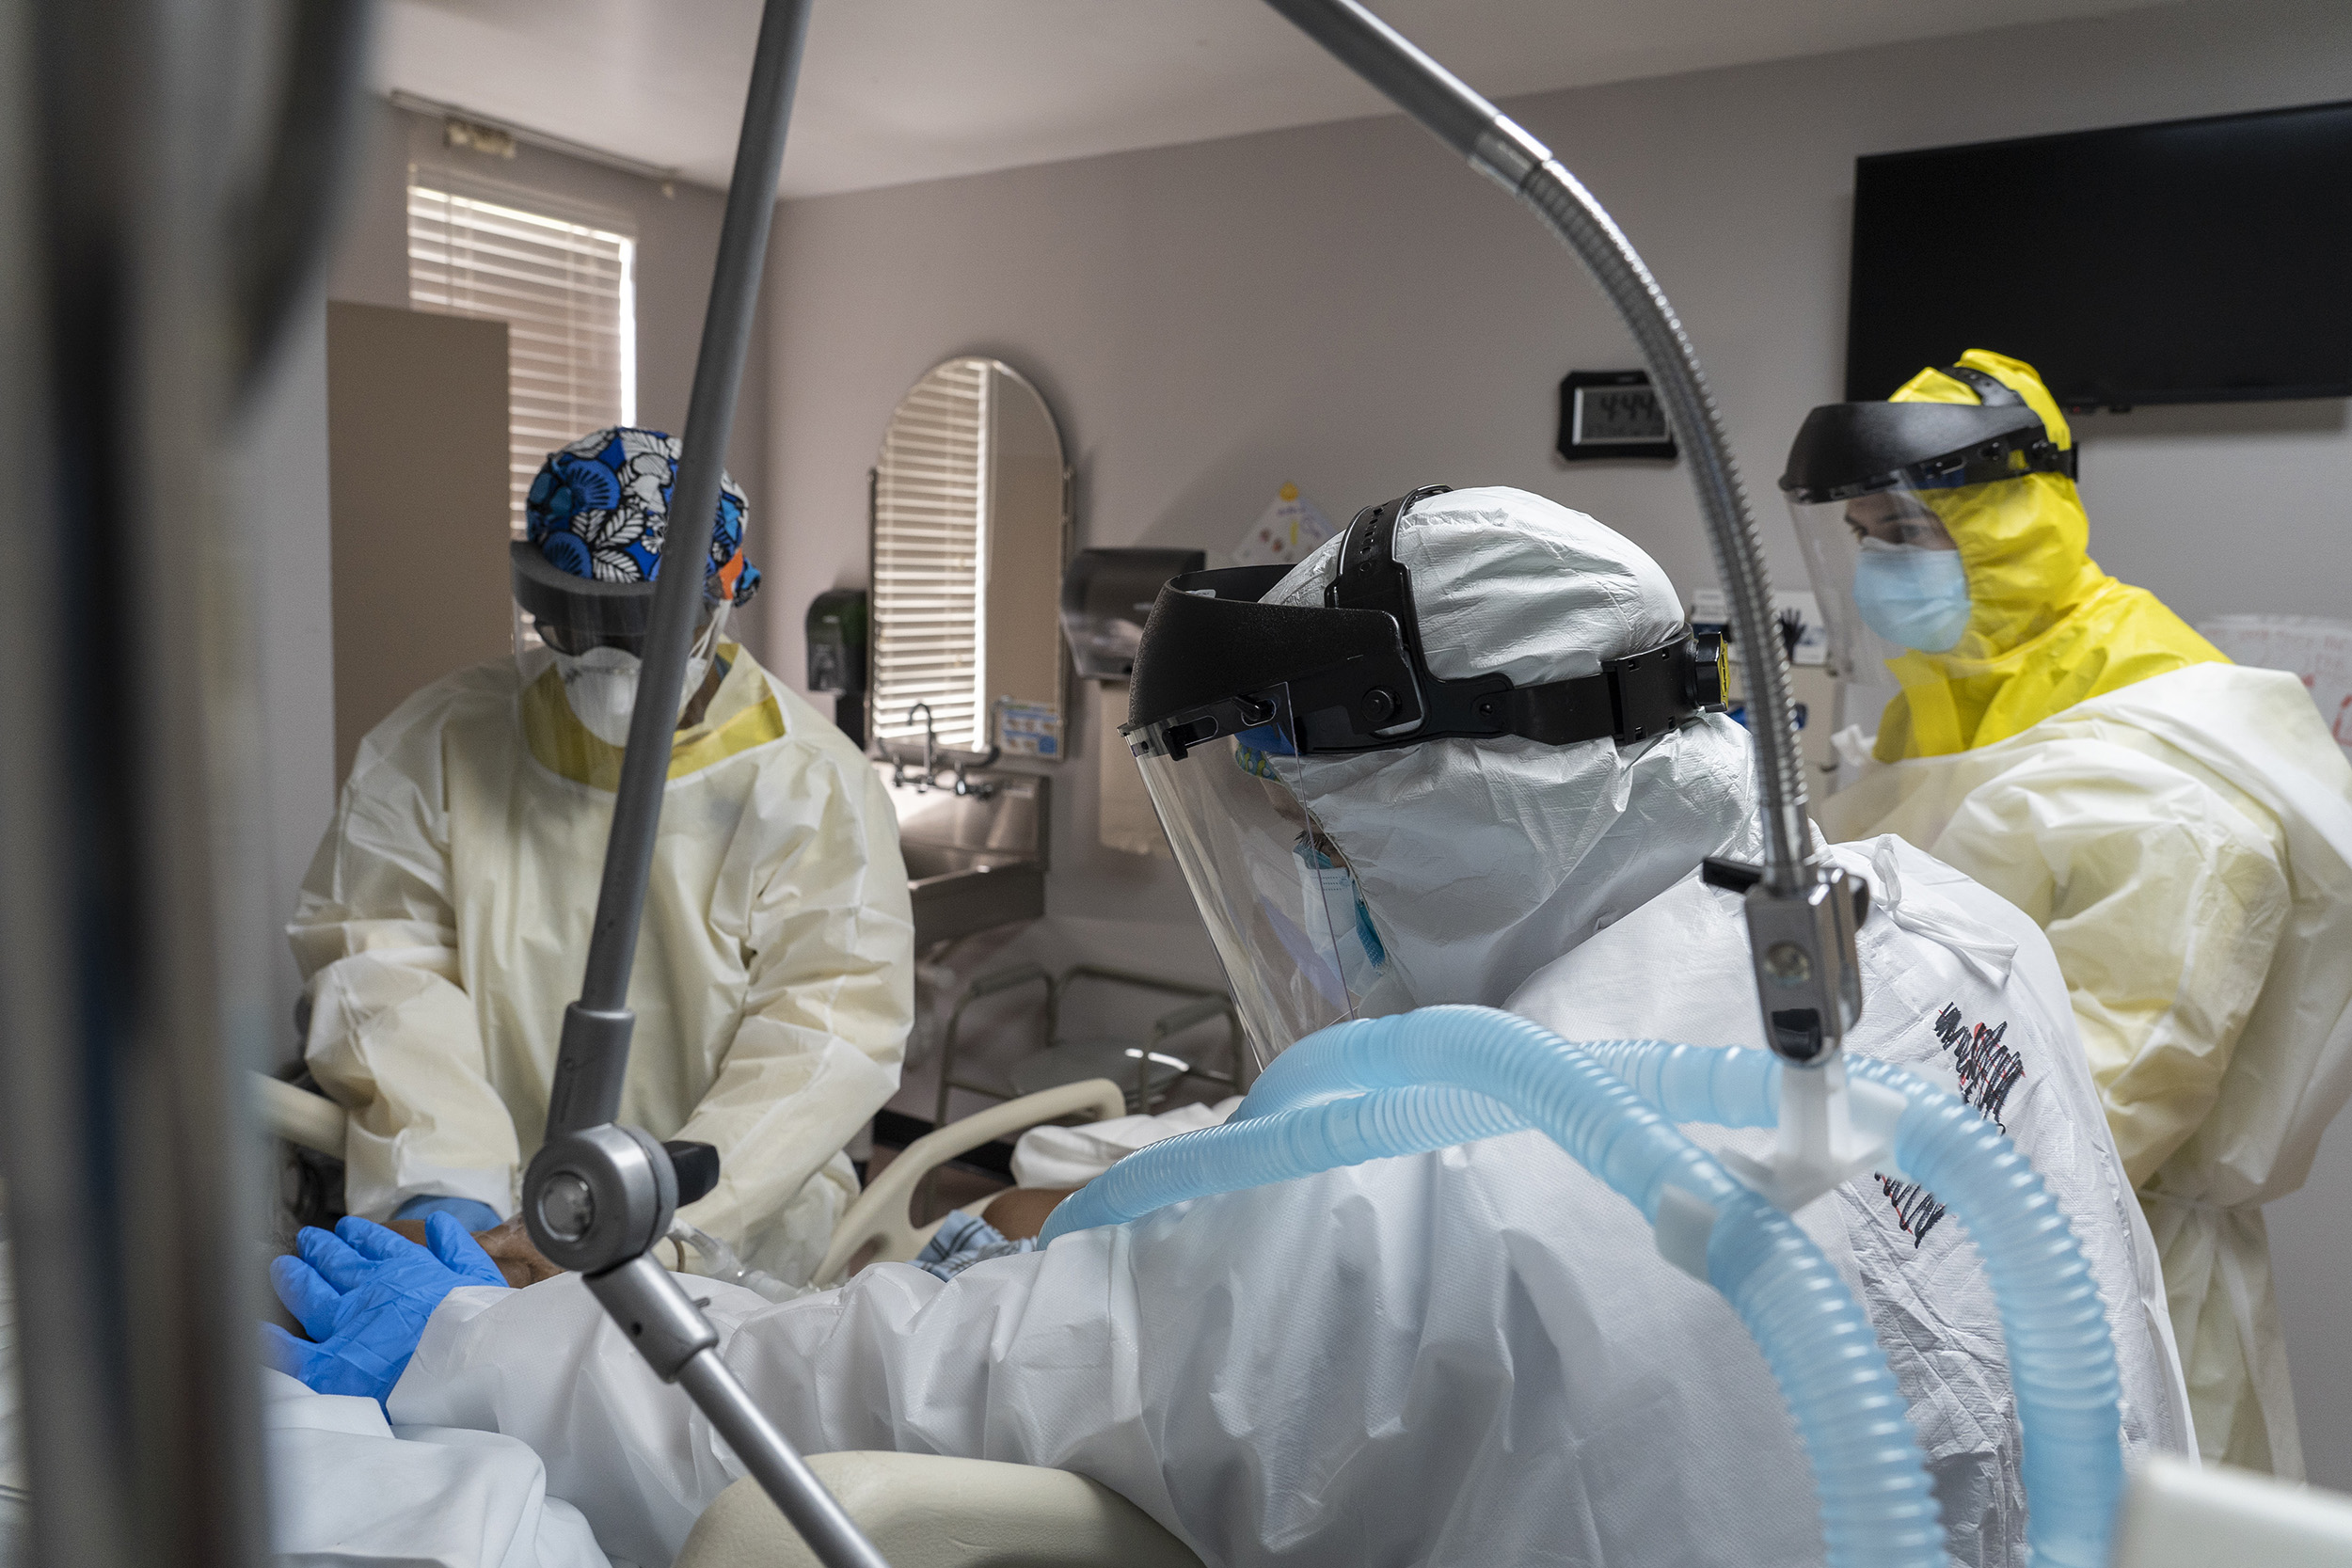 Members of the medical staff treat a patient in the COVID-19 intensive care unit at the United Memorial Medical Center on July 2, Houston, Texas.